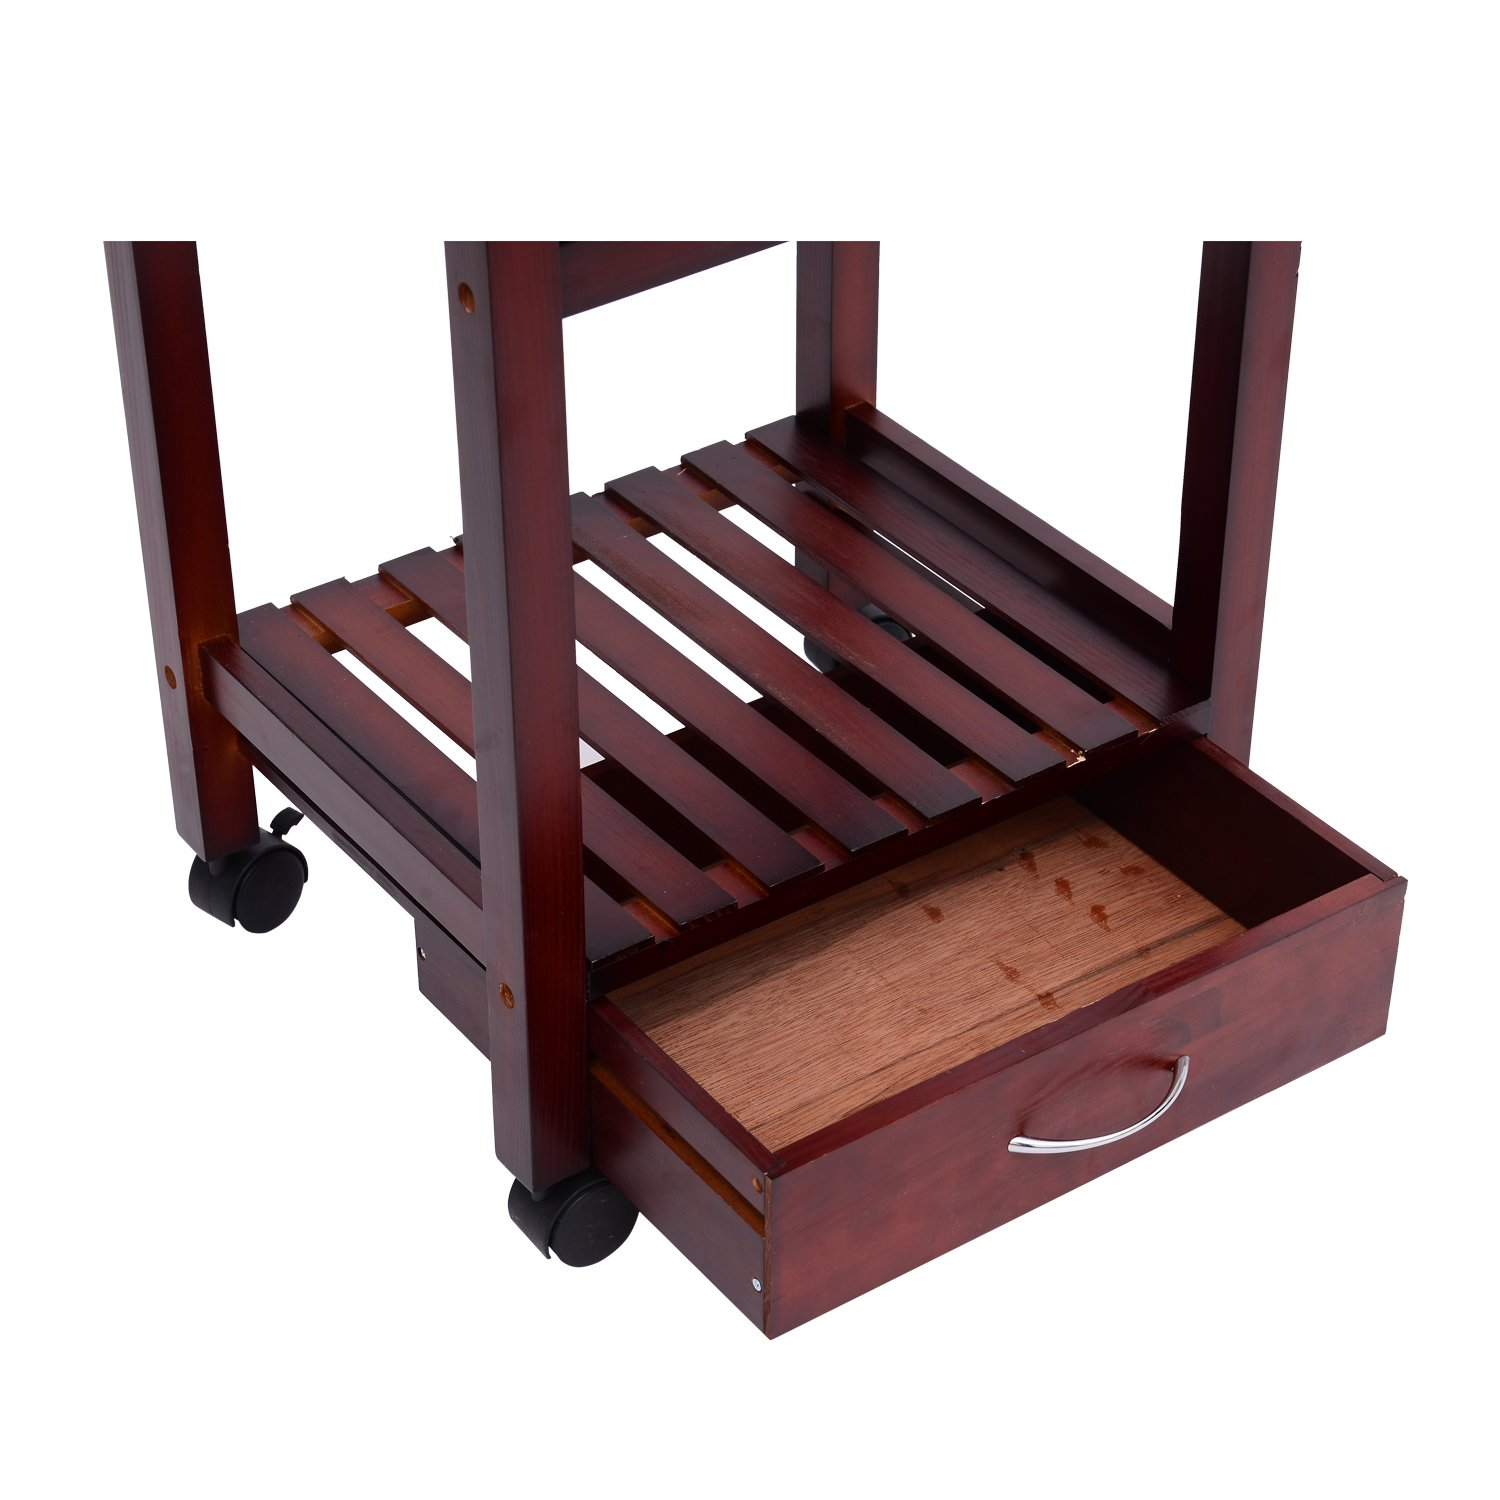 Festnight Kitchen Trolley Dining Storage Cart with Drawers and Wine Rack,Vintage Style by Festnight (Image #1)